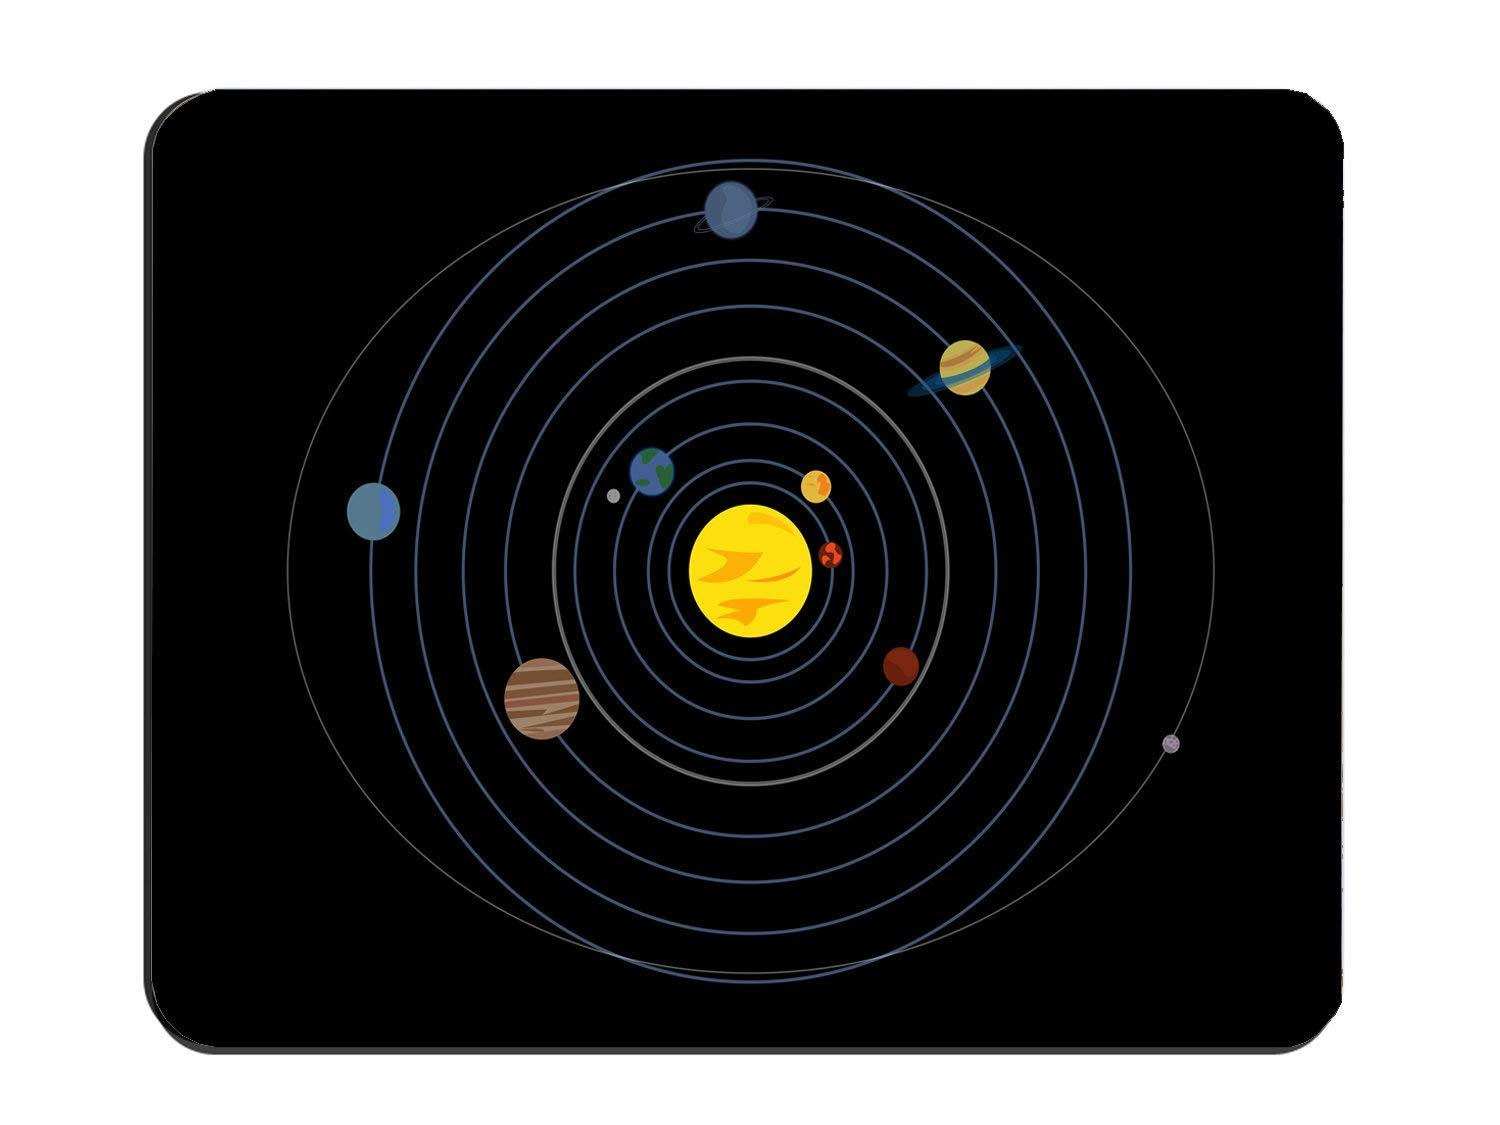 Solar System Planets Non-Slip Rubber Mousepad, Gaming Mouse Pad 8.7'' x 7.08'' inch